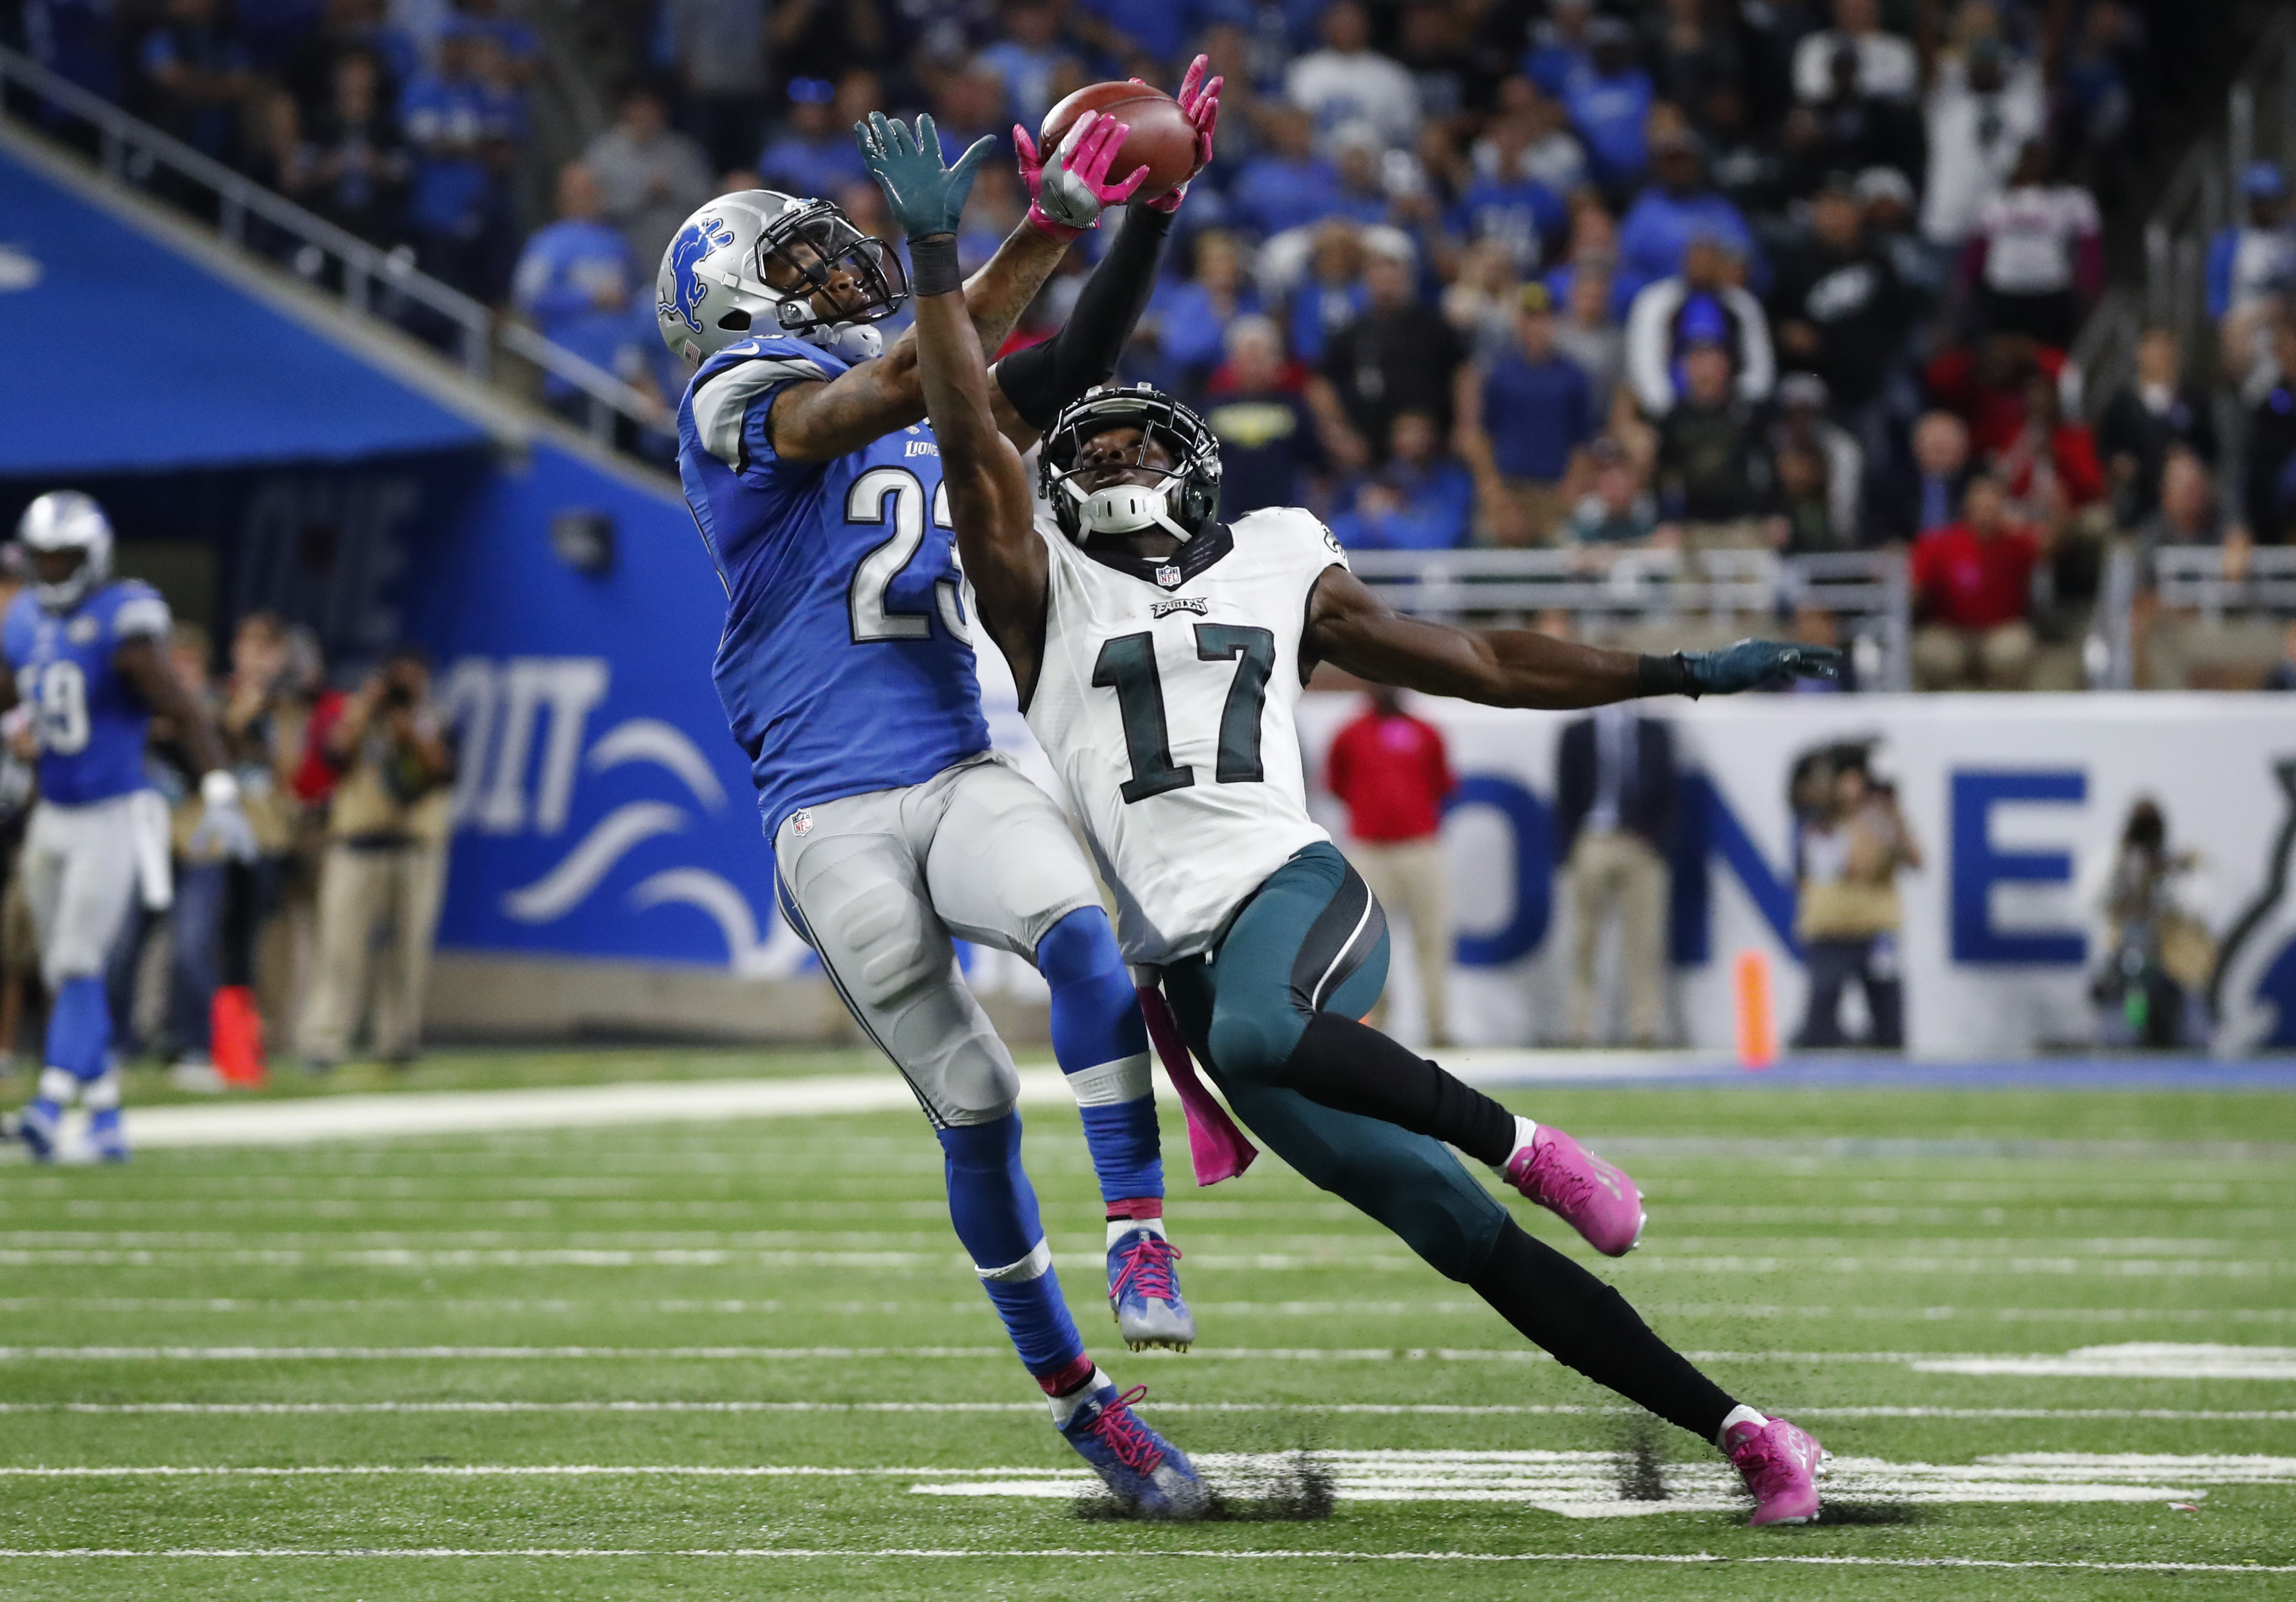 Detroit Lions cornerback Darius Slay (23) intercepts a pass intended for Philadelphia Eagles wide receiver Nelson Agholor (17) in the fourth quarter of an NFL football game, Sunday, Oct. 9, 2016, in Detroit. Detroit defeated Philadelphia 24-23. (AP Photo/